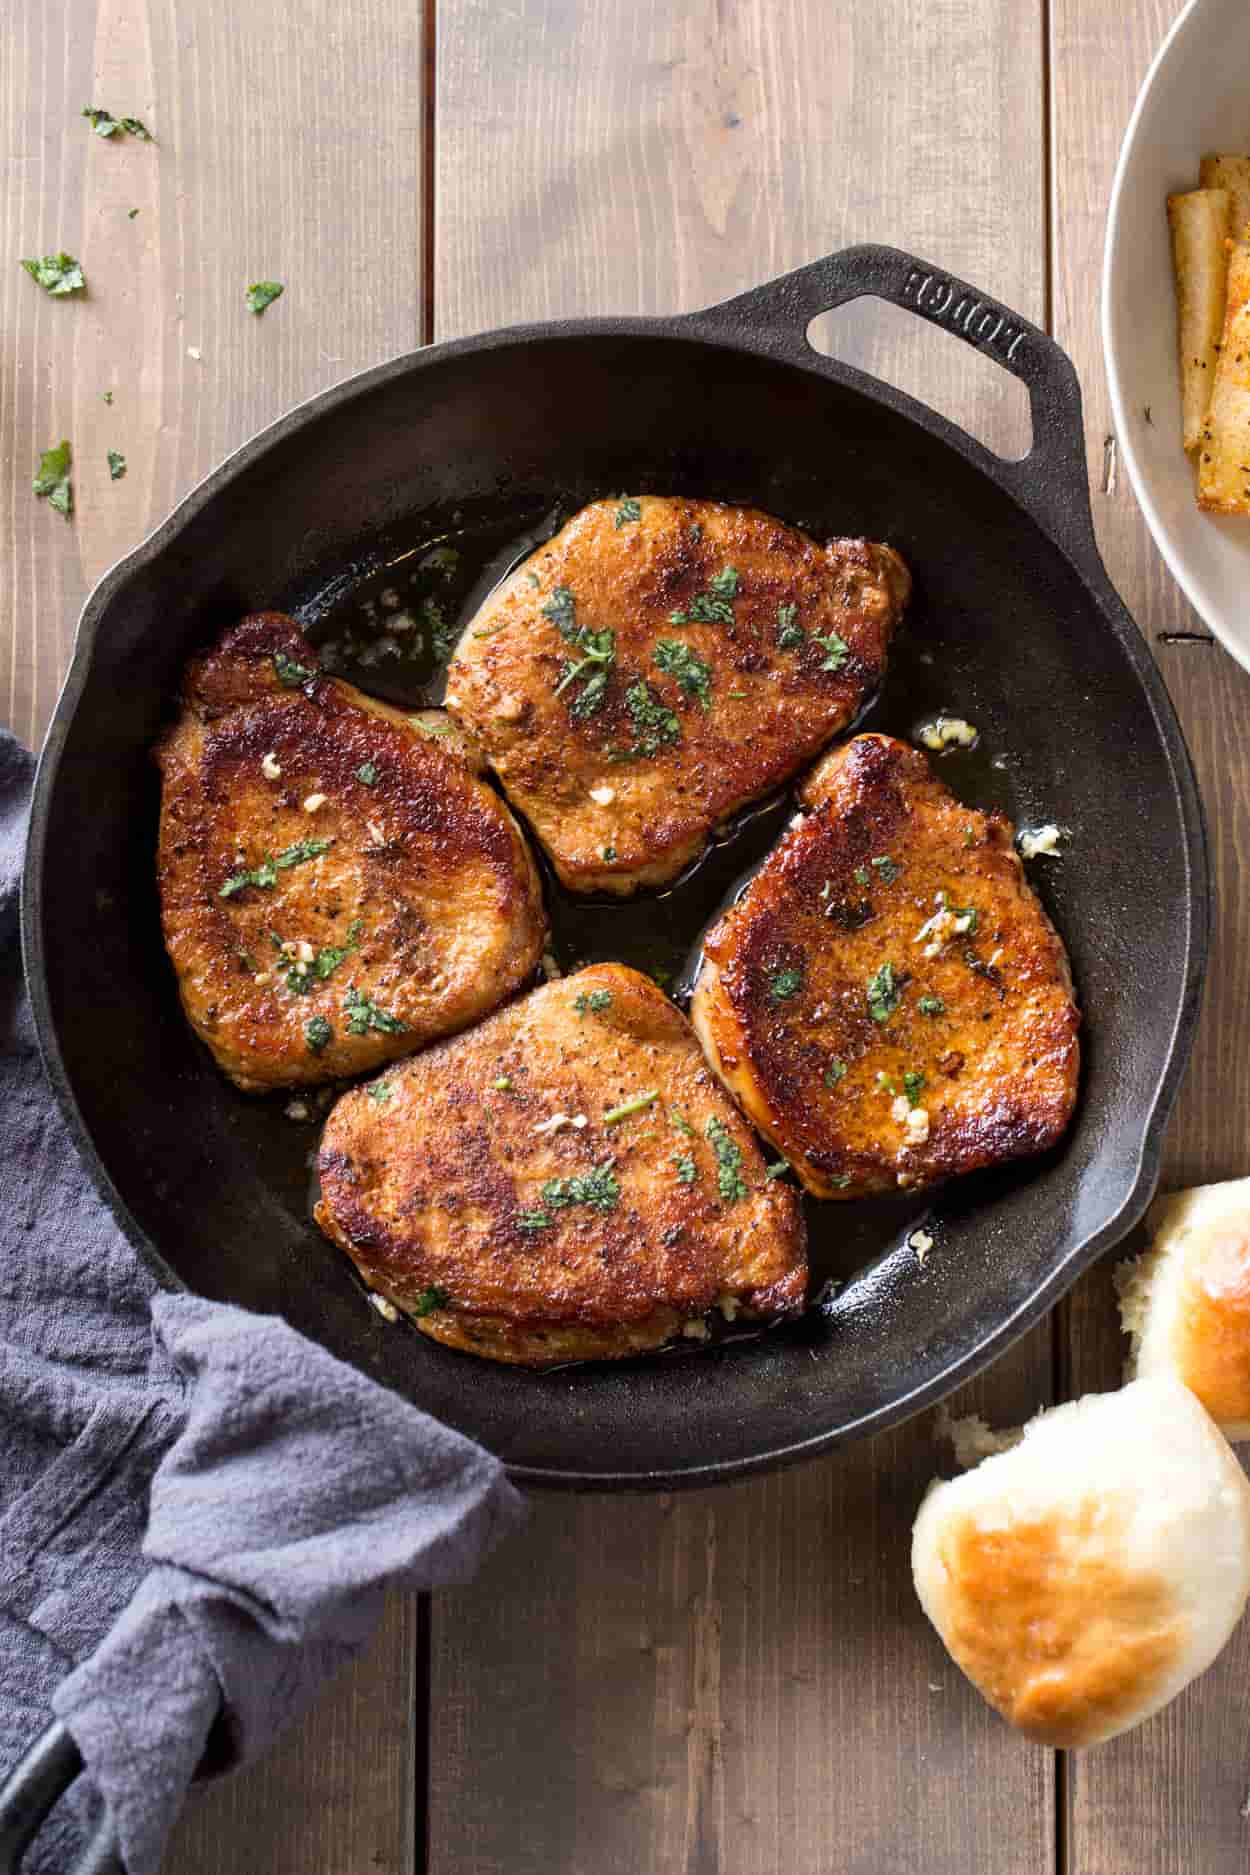 Pork chops in a skillet topped with garlic and greens. Next to dinner rolls.